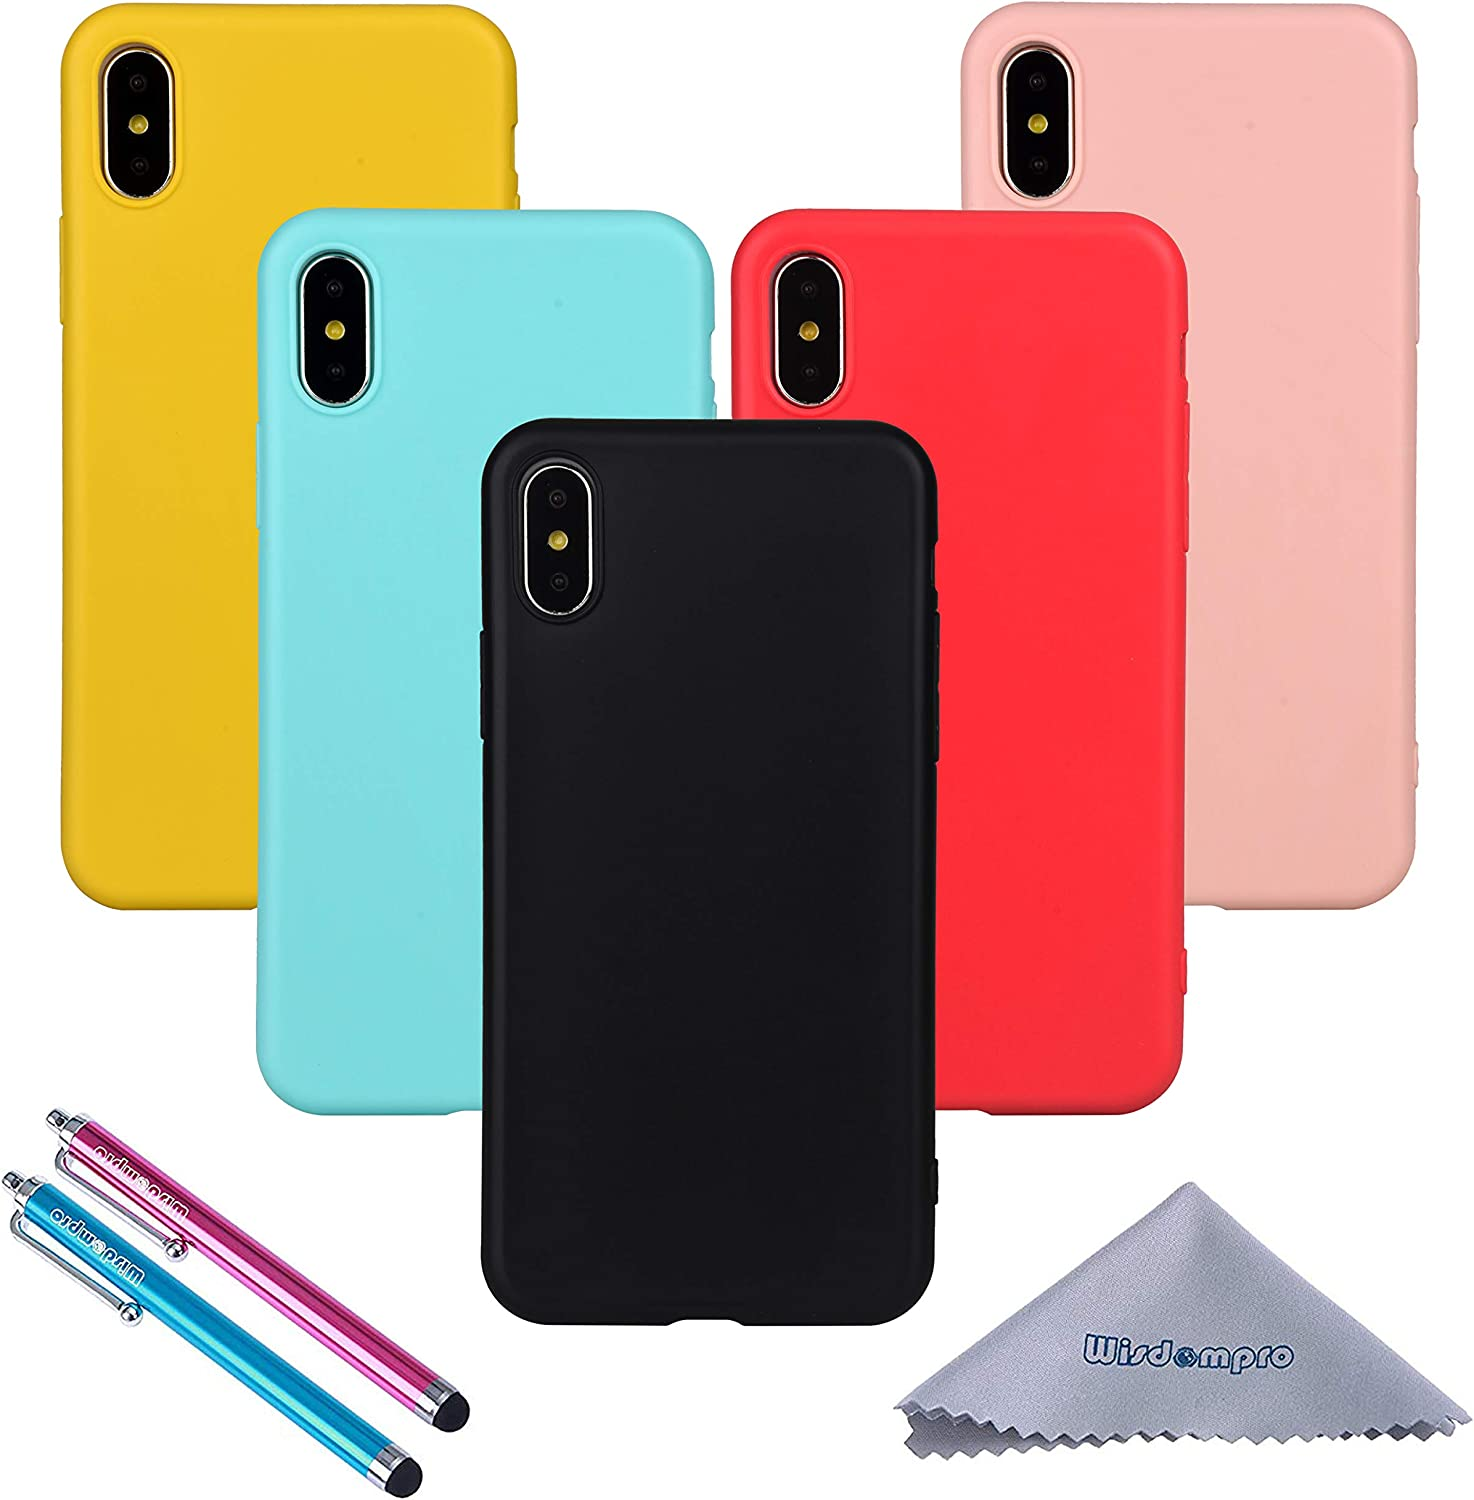 Wisdompro iPhone X Case, iPhone Xs Case, Bundle of 5 Pack Extra Thin Slim Jelly Soft TPU Gel Protective Case Cover for Apple iPhone X XS(Black, Aqua Blue, Naked Skin Pink, Yellow, Red)- Candy Color